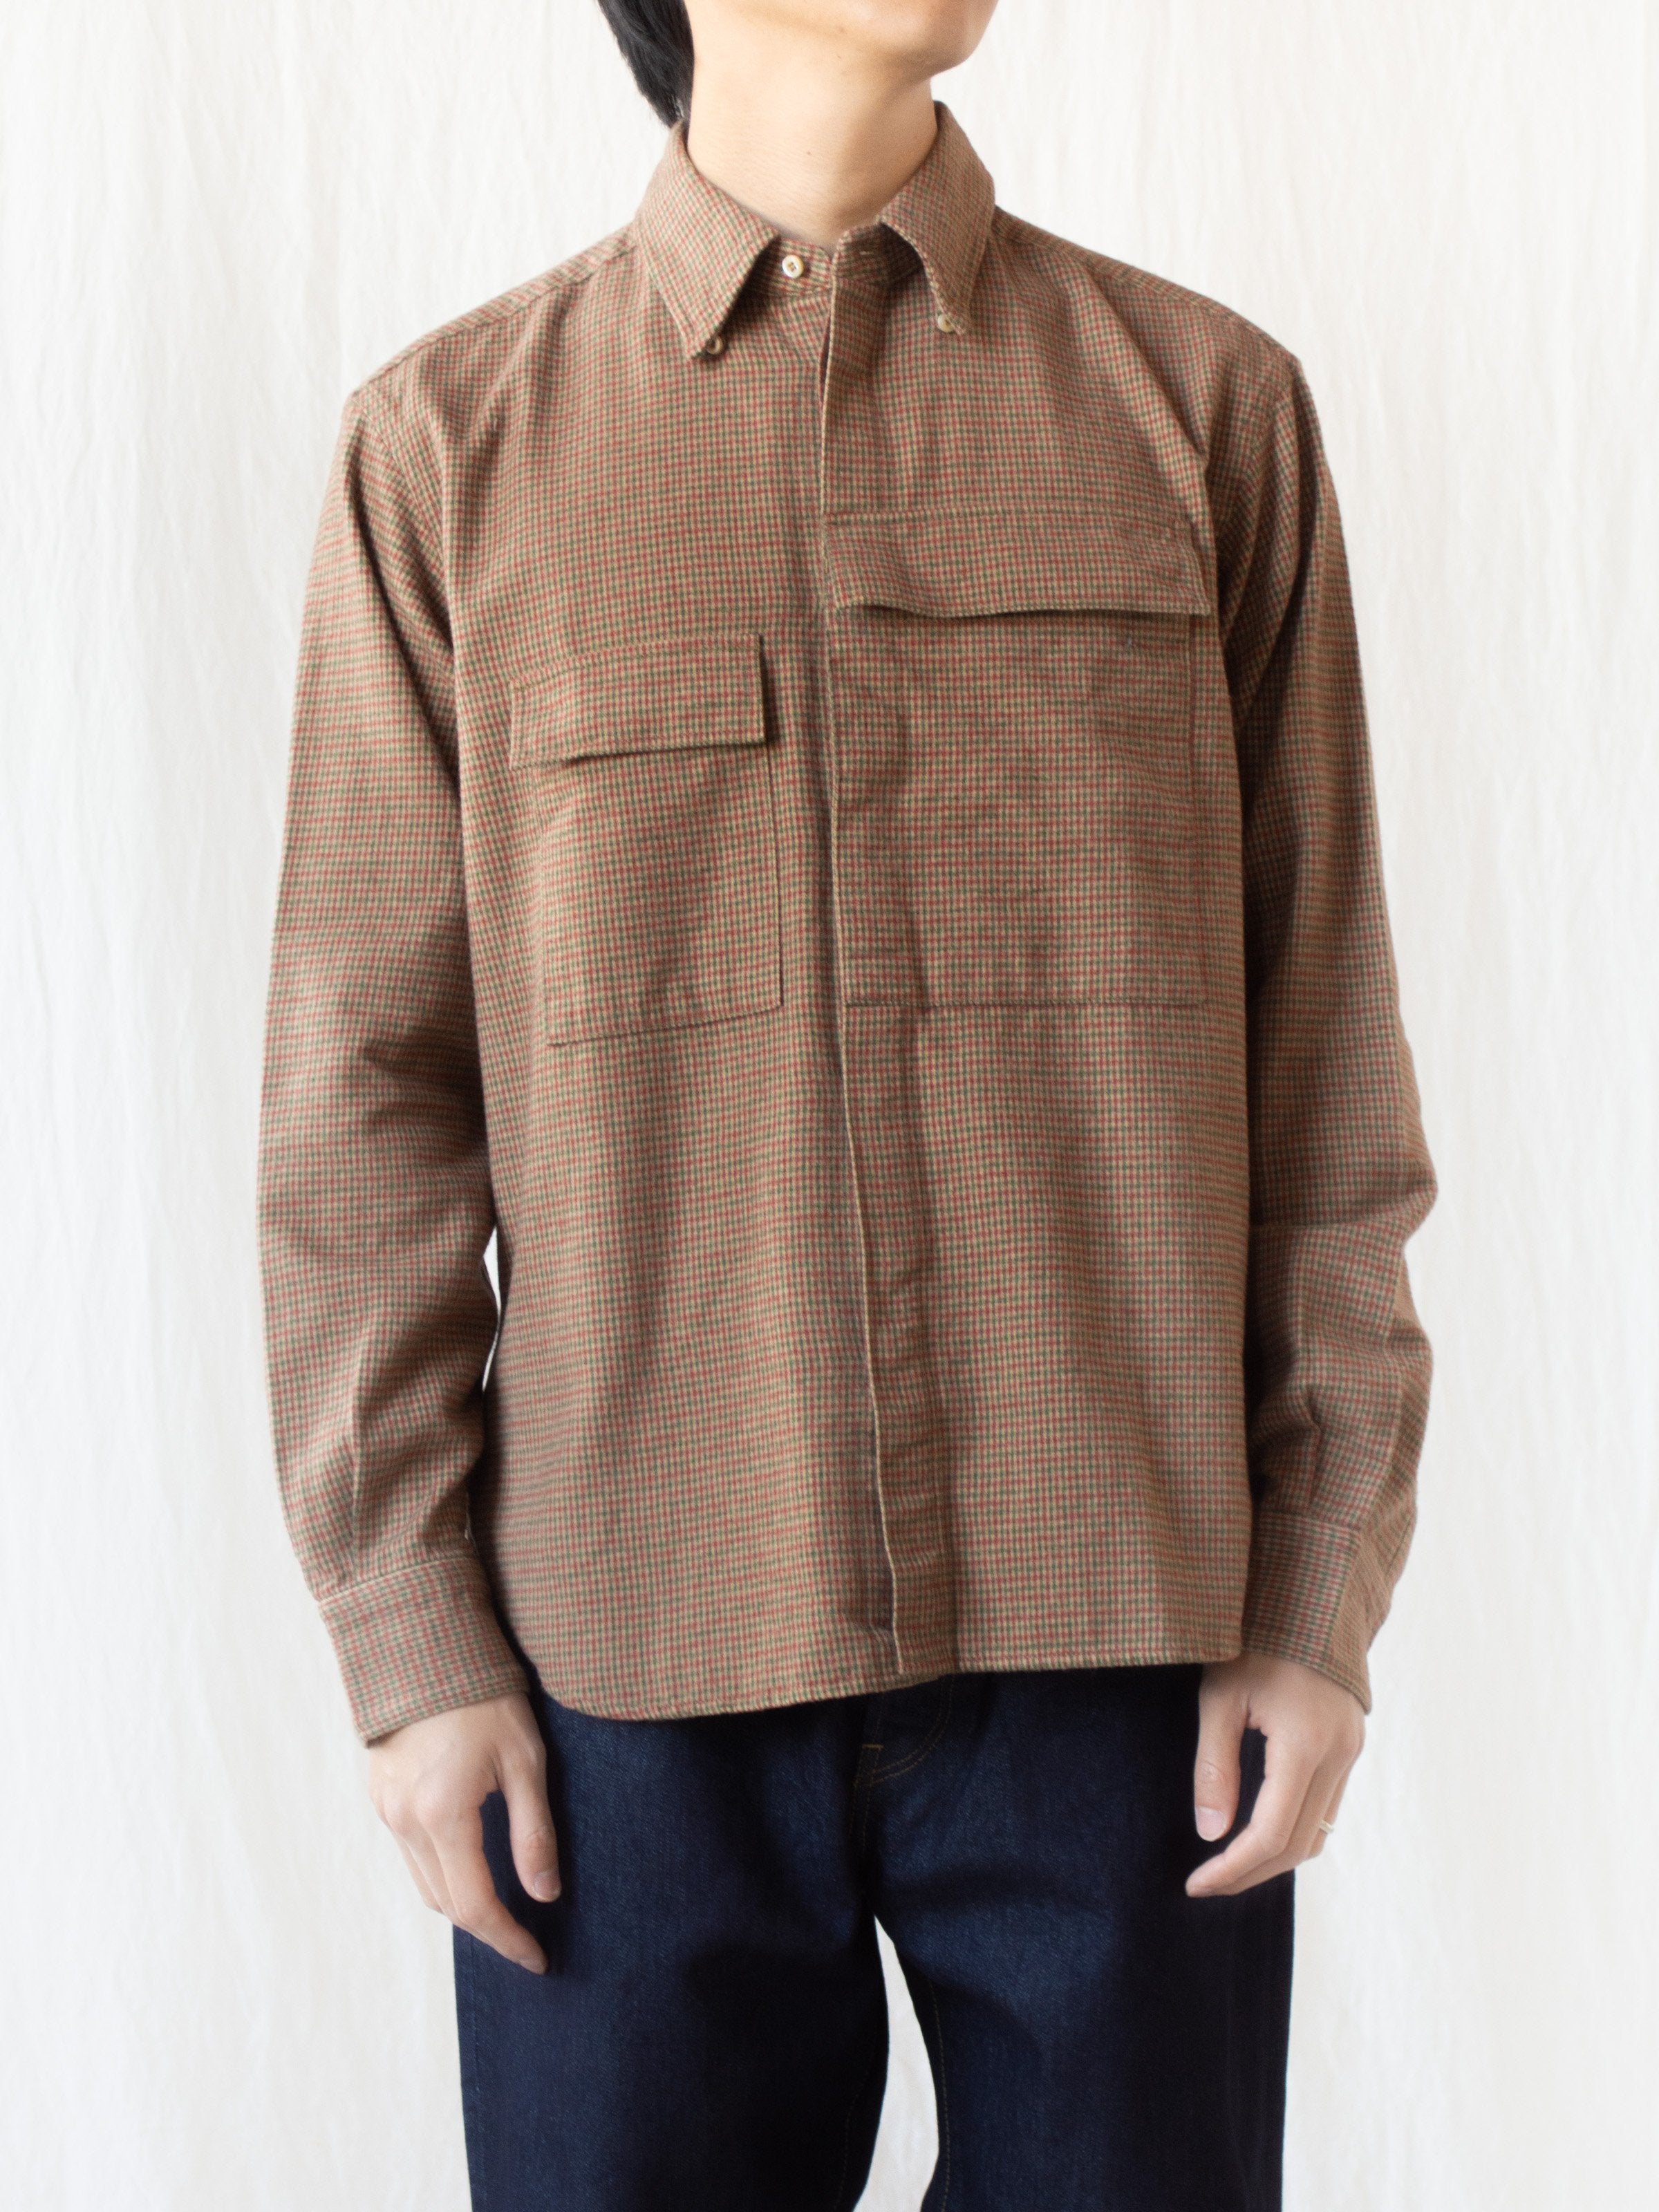 CBA Shirt - Brown Gunclub Check